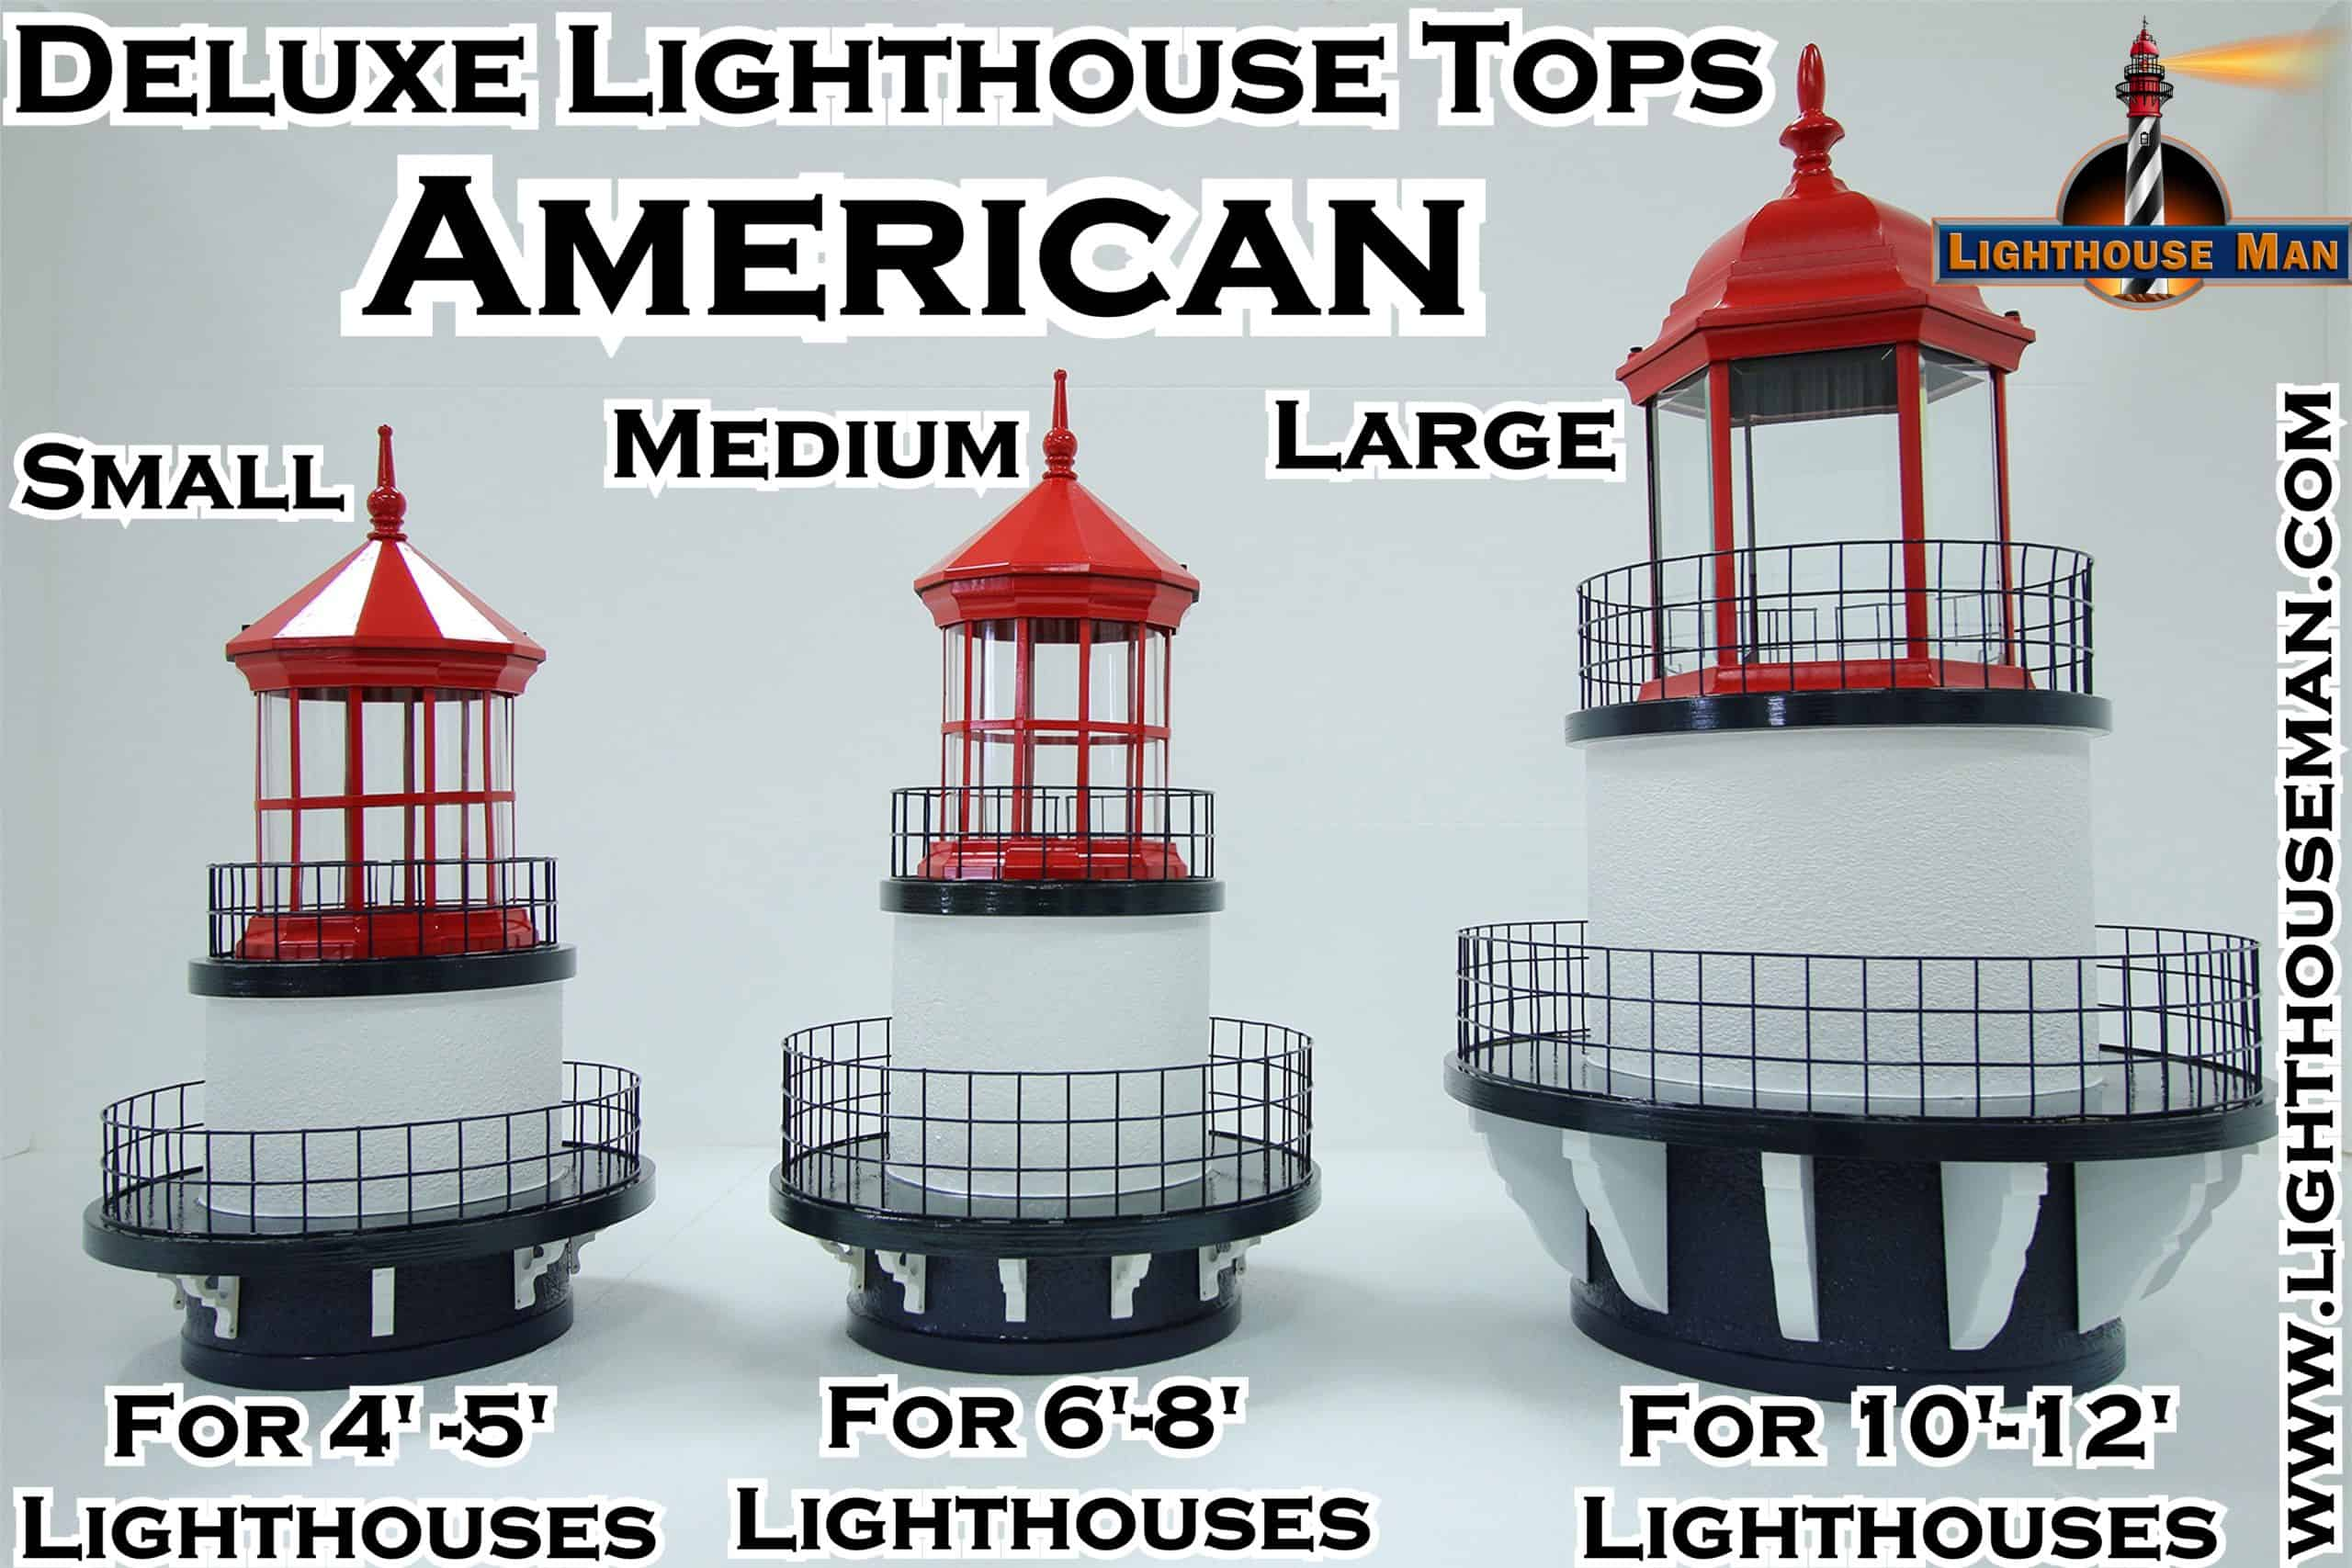 Deluxe American Lighthouse Tops